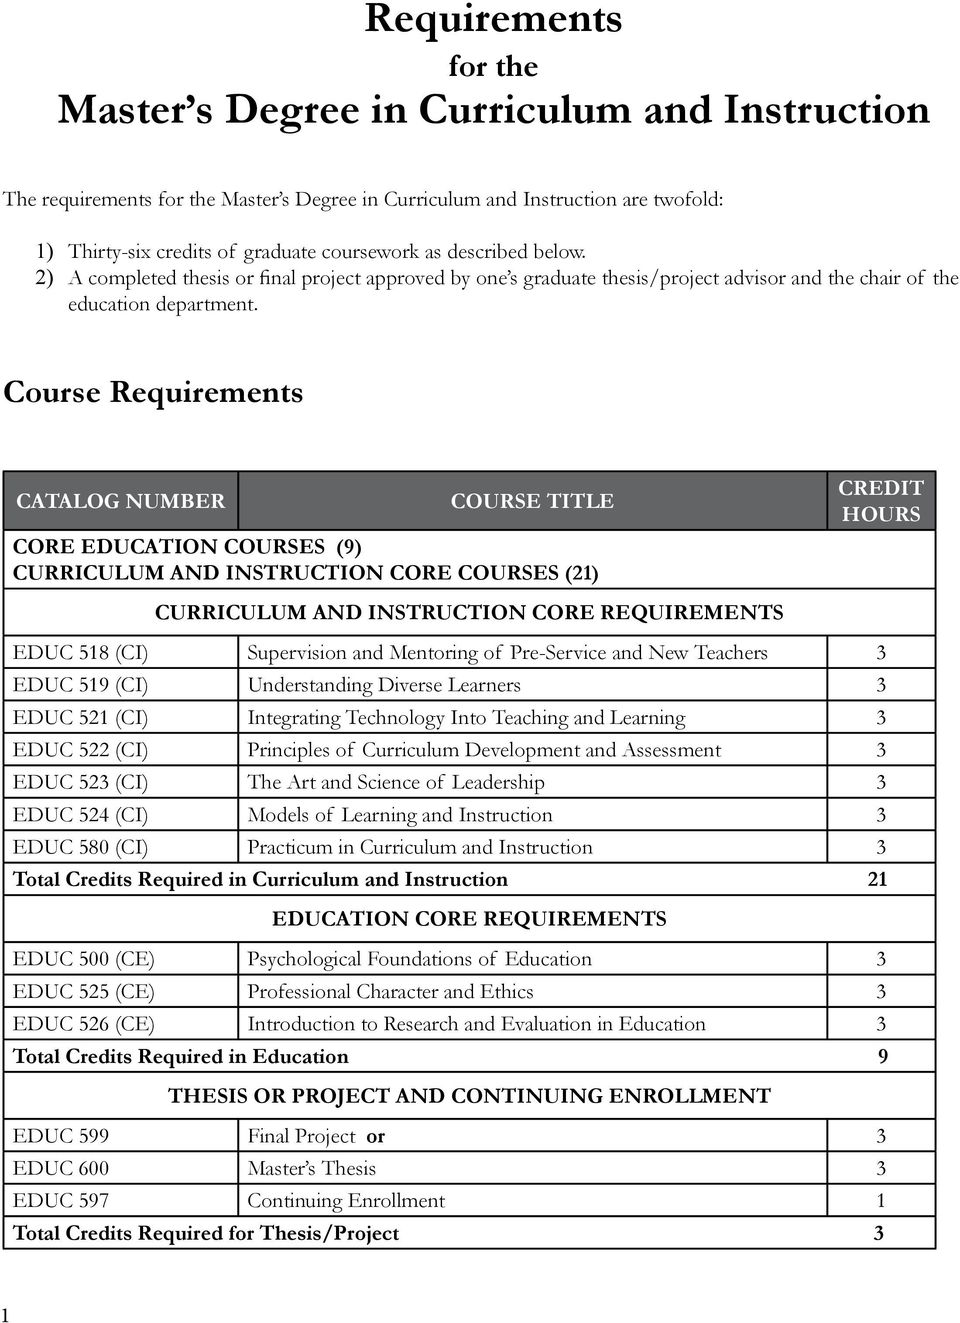 Course Requirements CATALOG NUMBER COURSE TITLE CORE EDUCATION COURSES (9) CURRICULUM AND INSTRUCTION CORE COURSES (21) CREDIT HOURS CURRICULUM AND INSTRUCTION CORE REQUIREMENTS EDUC 518 (CI)